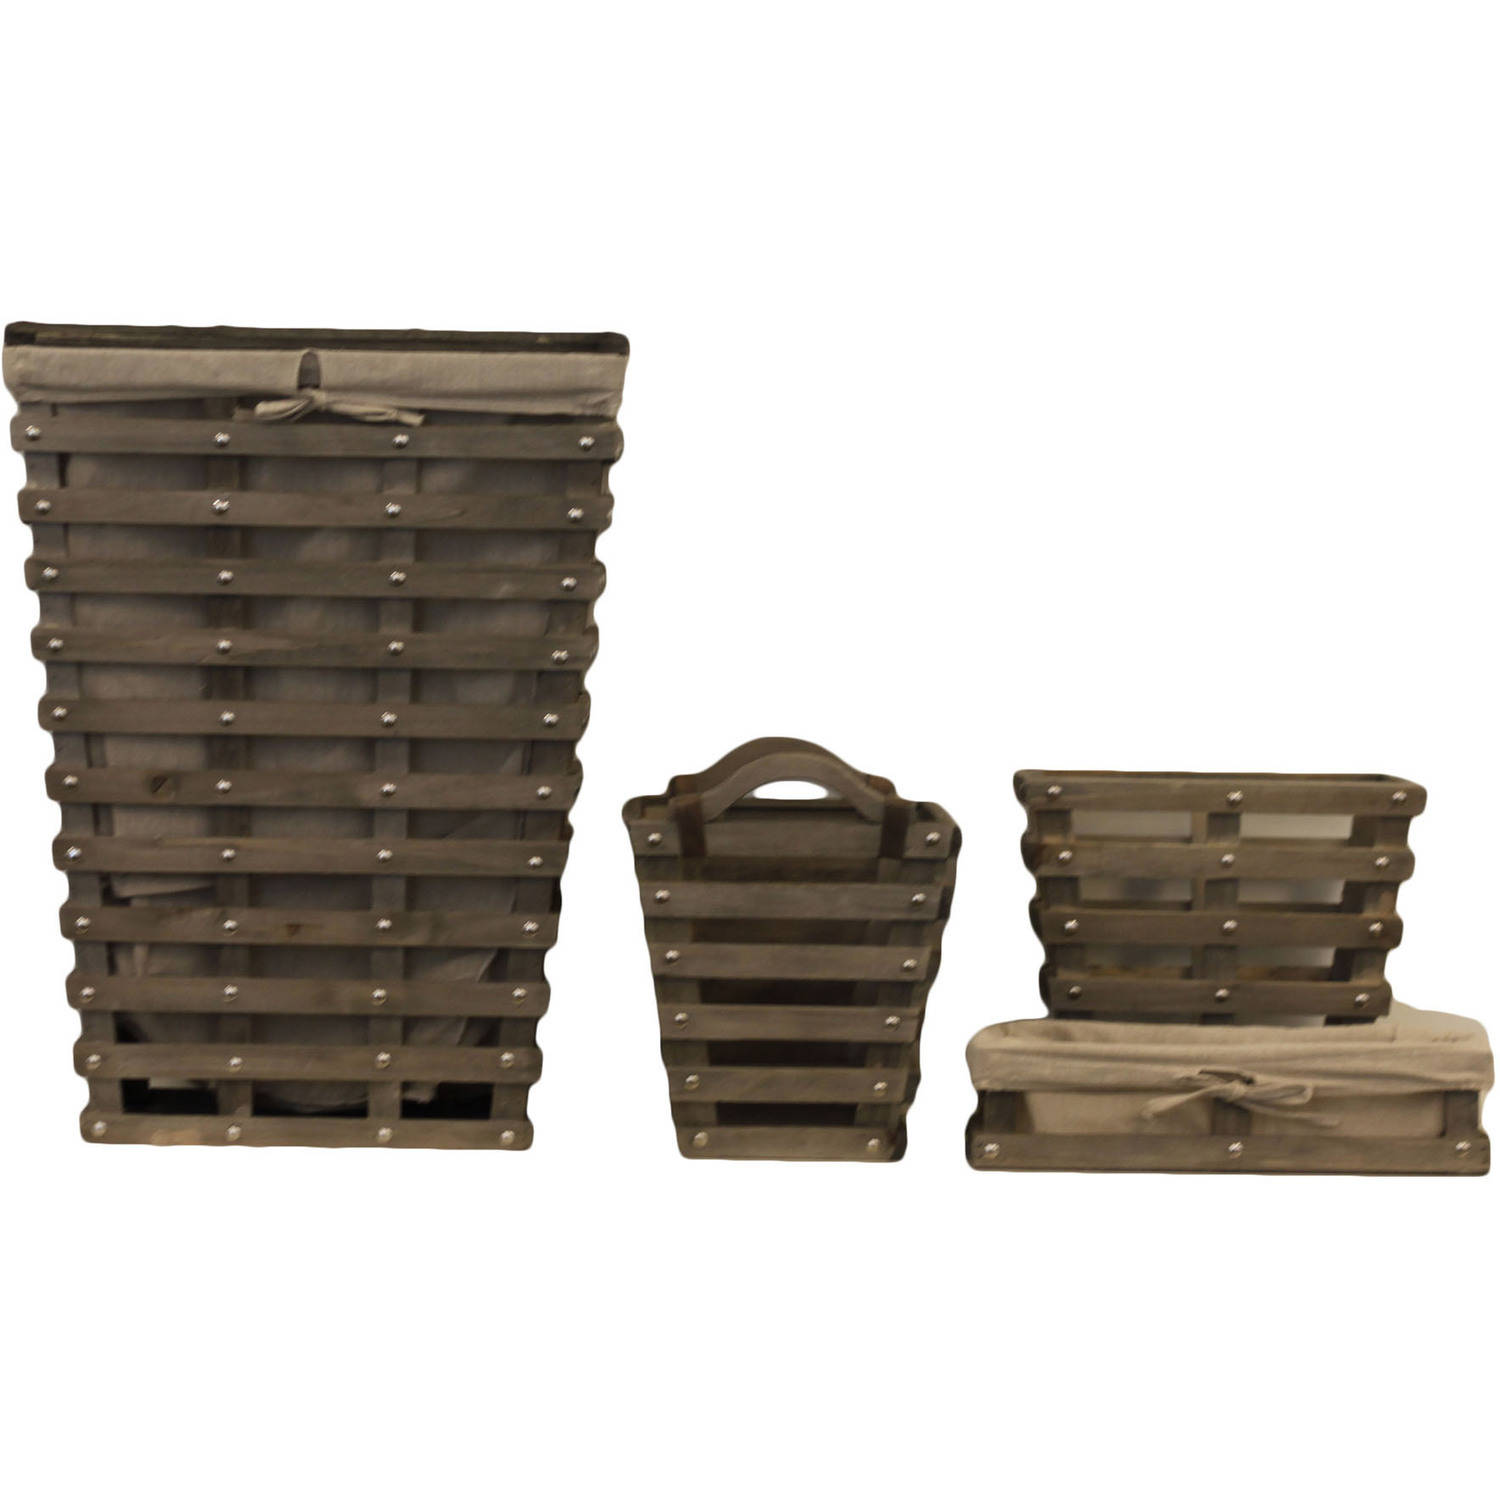 4-Piece Wood Slat Bath Set, Gray